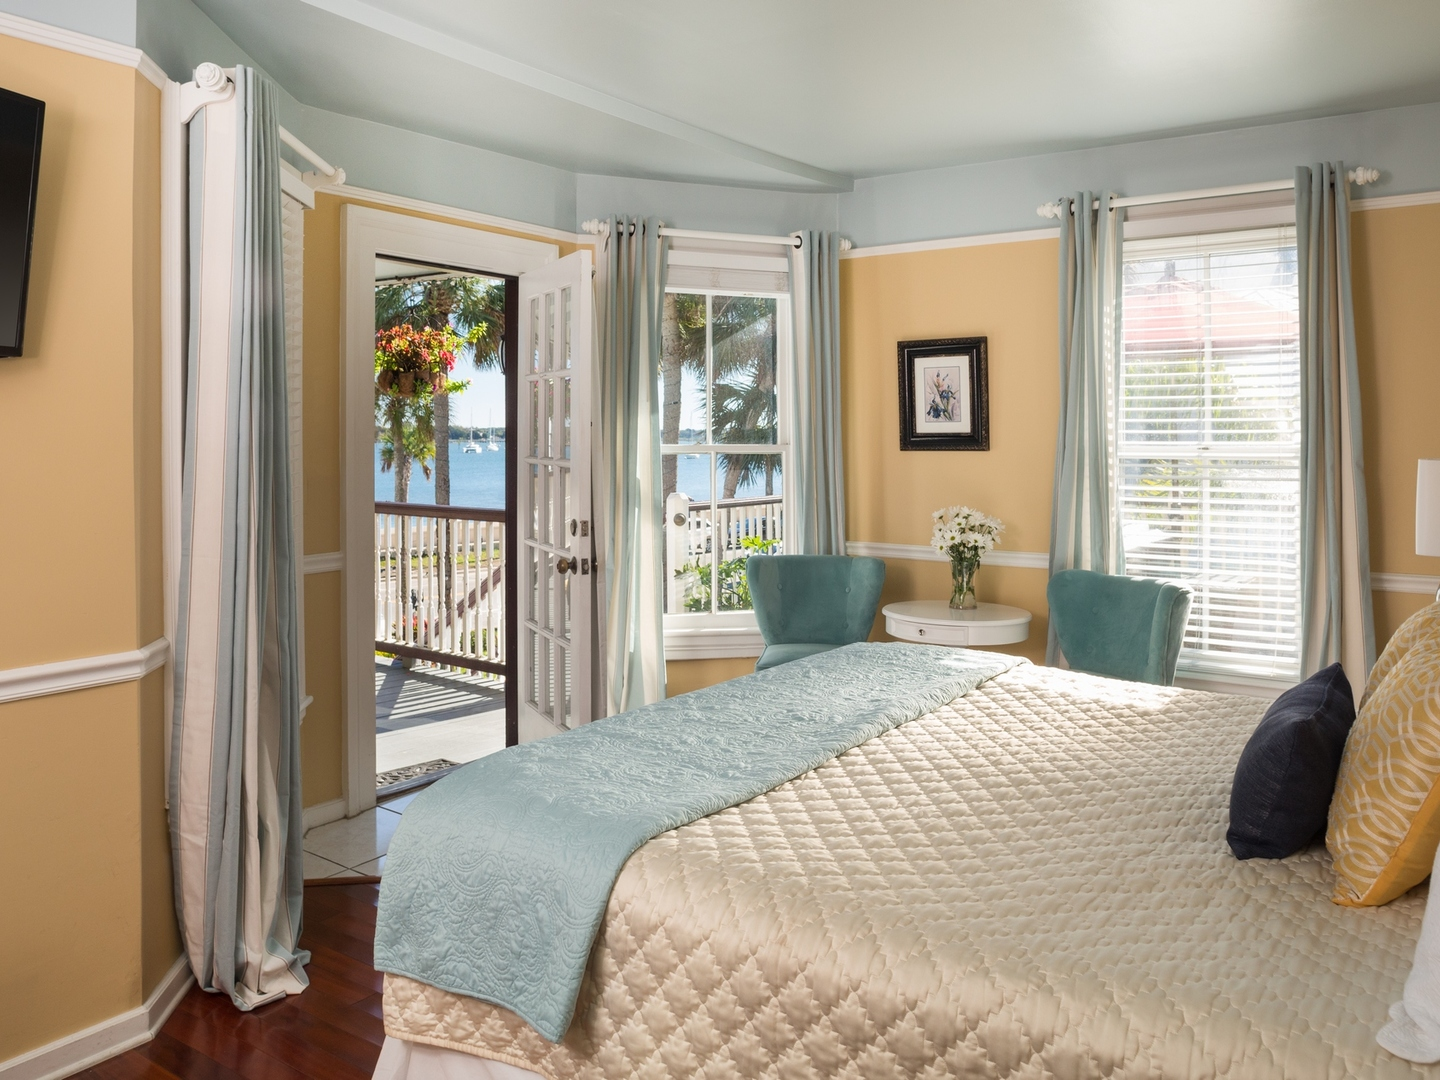 A bedroom with a large bed in a room at Bayfront Marin House.